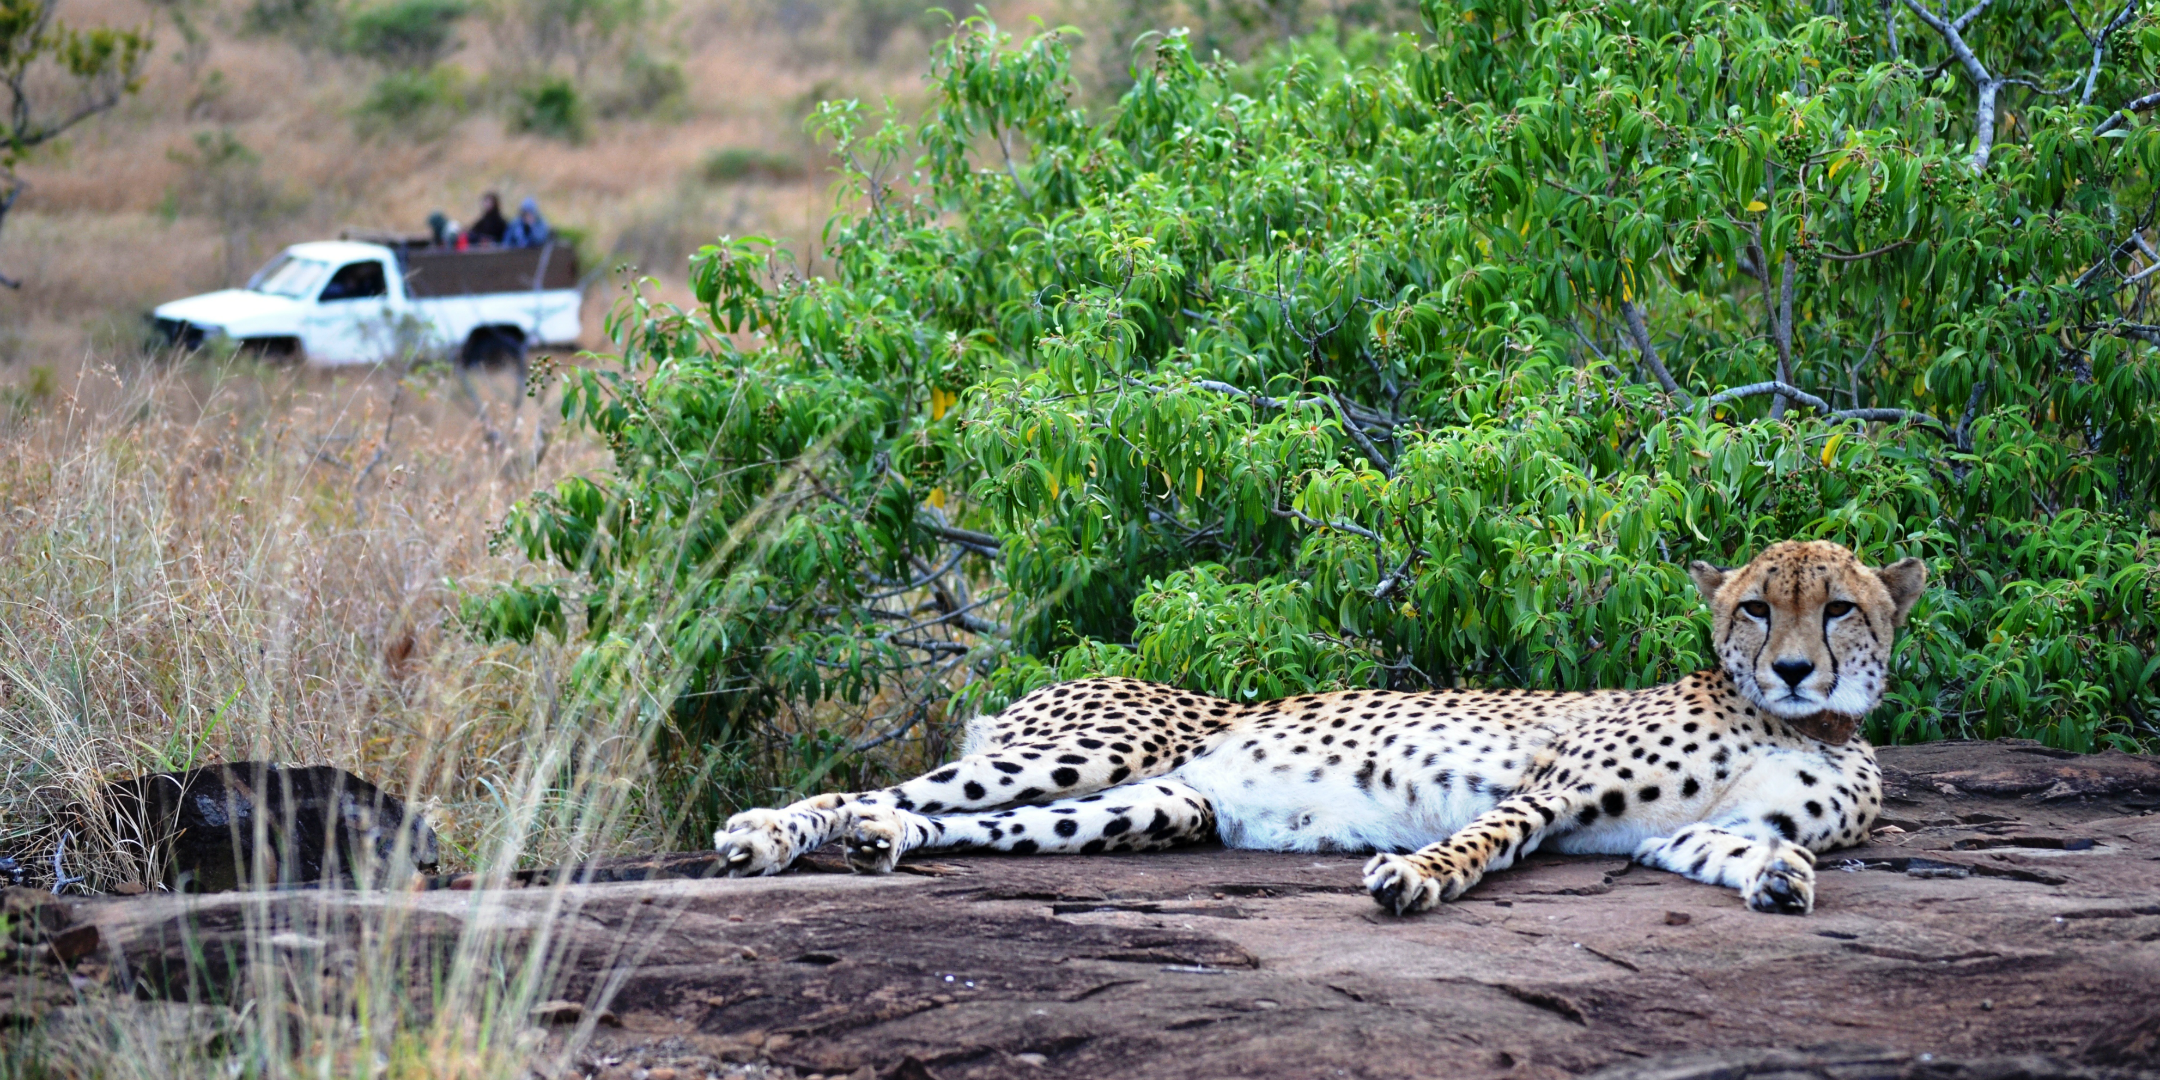 help save cheetahs from their ever changing habitat and food resources with GVI's wildlife conservation and research internship.